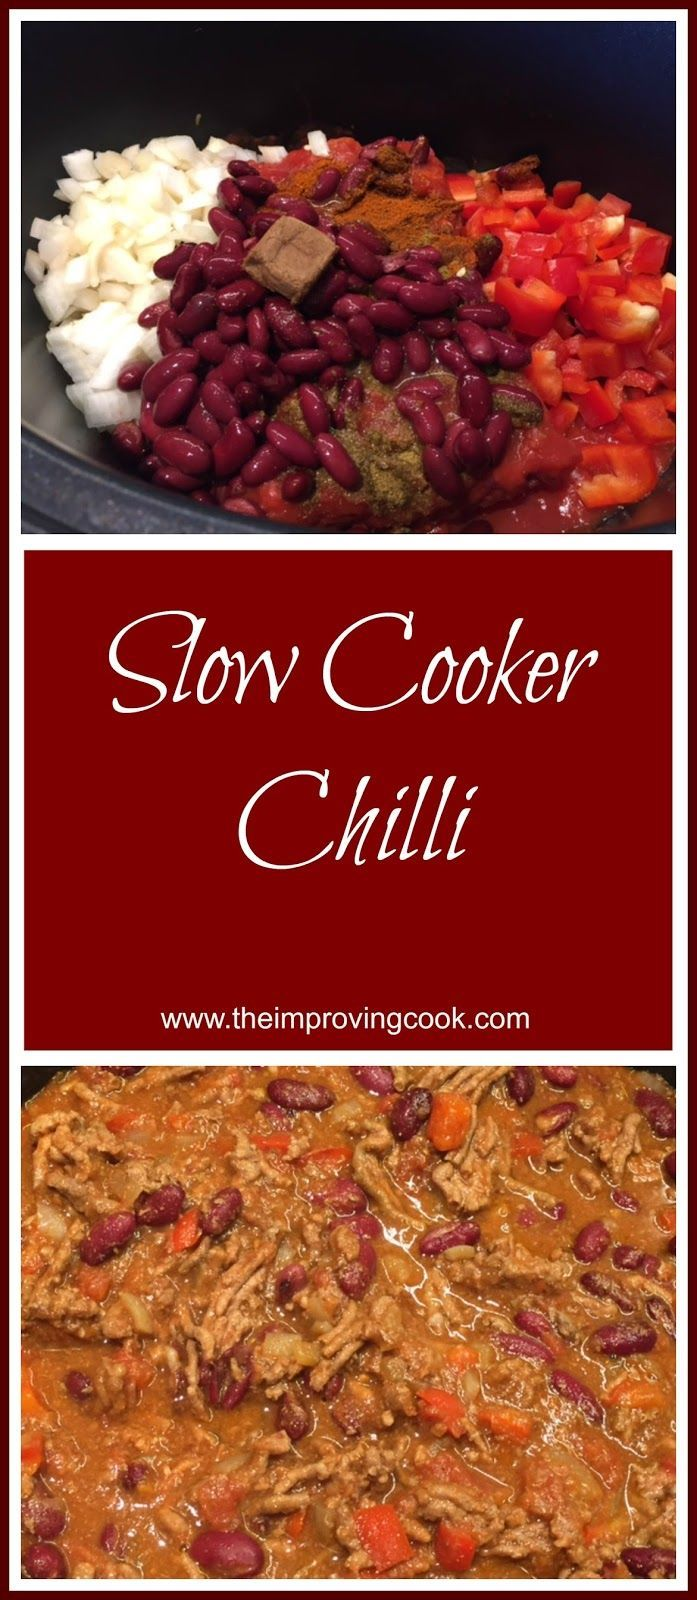 Slow Cooker Chilli- easy dinner recipe. Great for batch cooking and freezer meals.